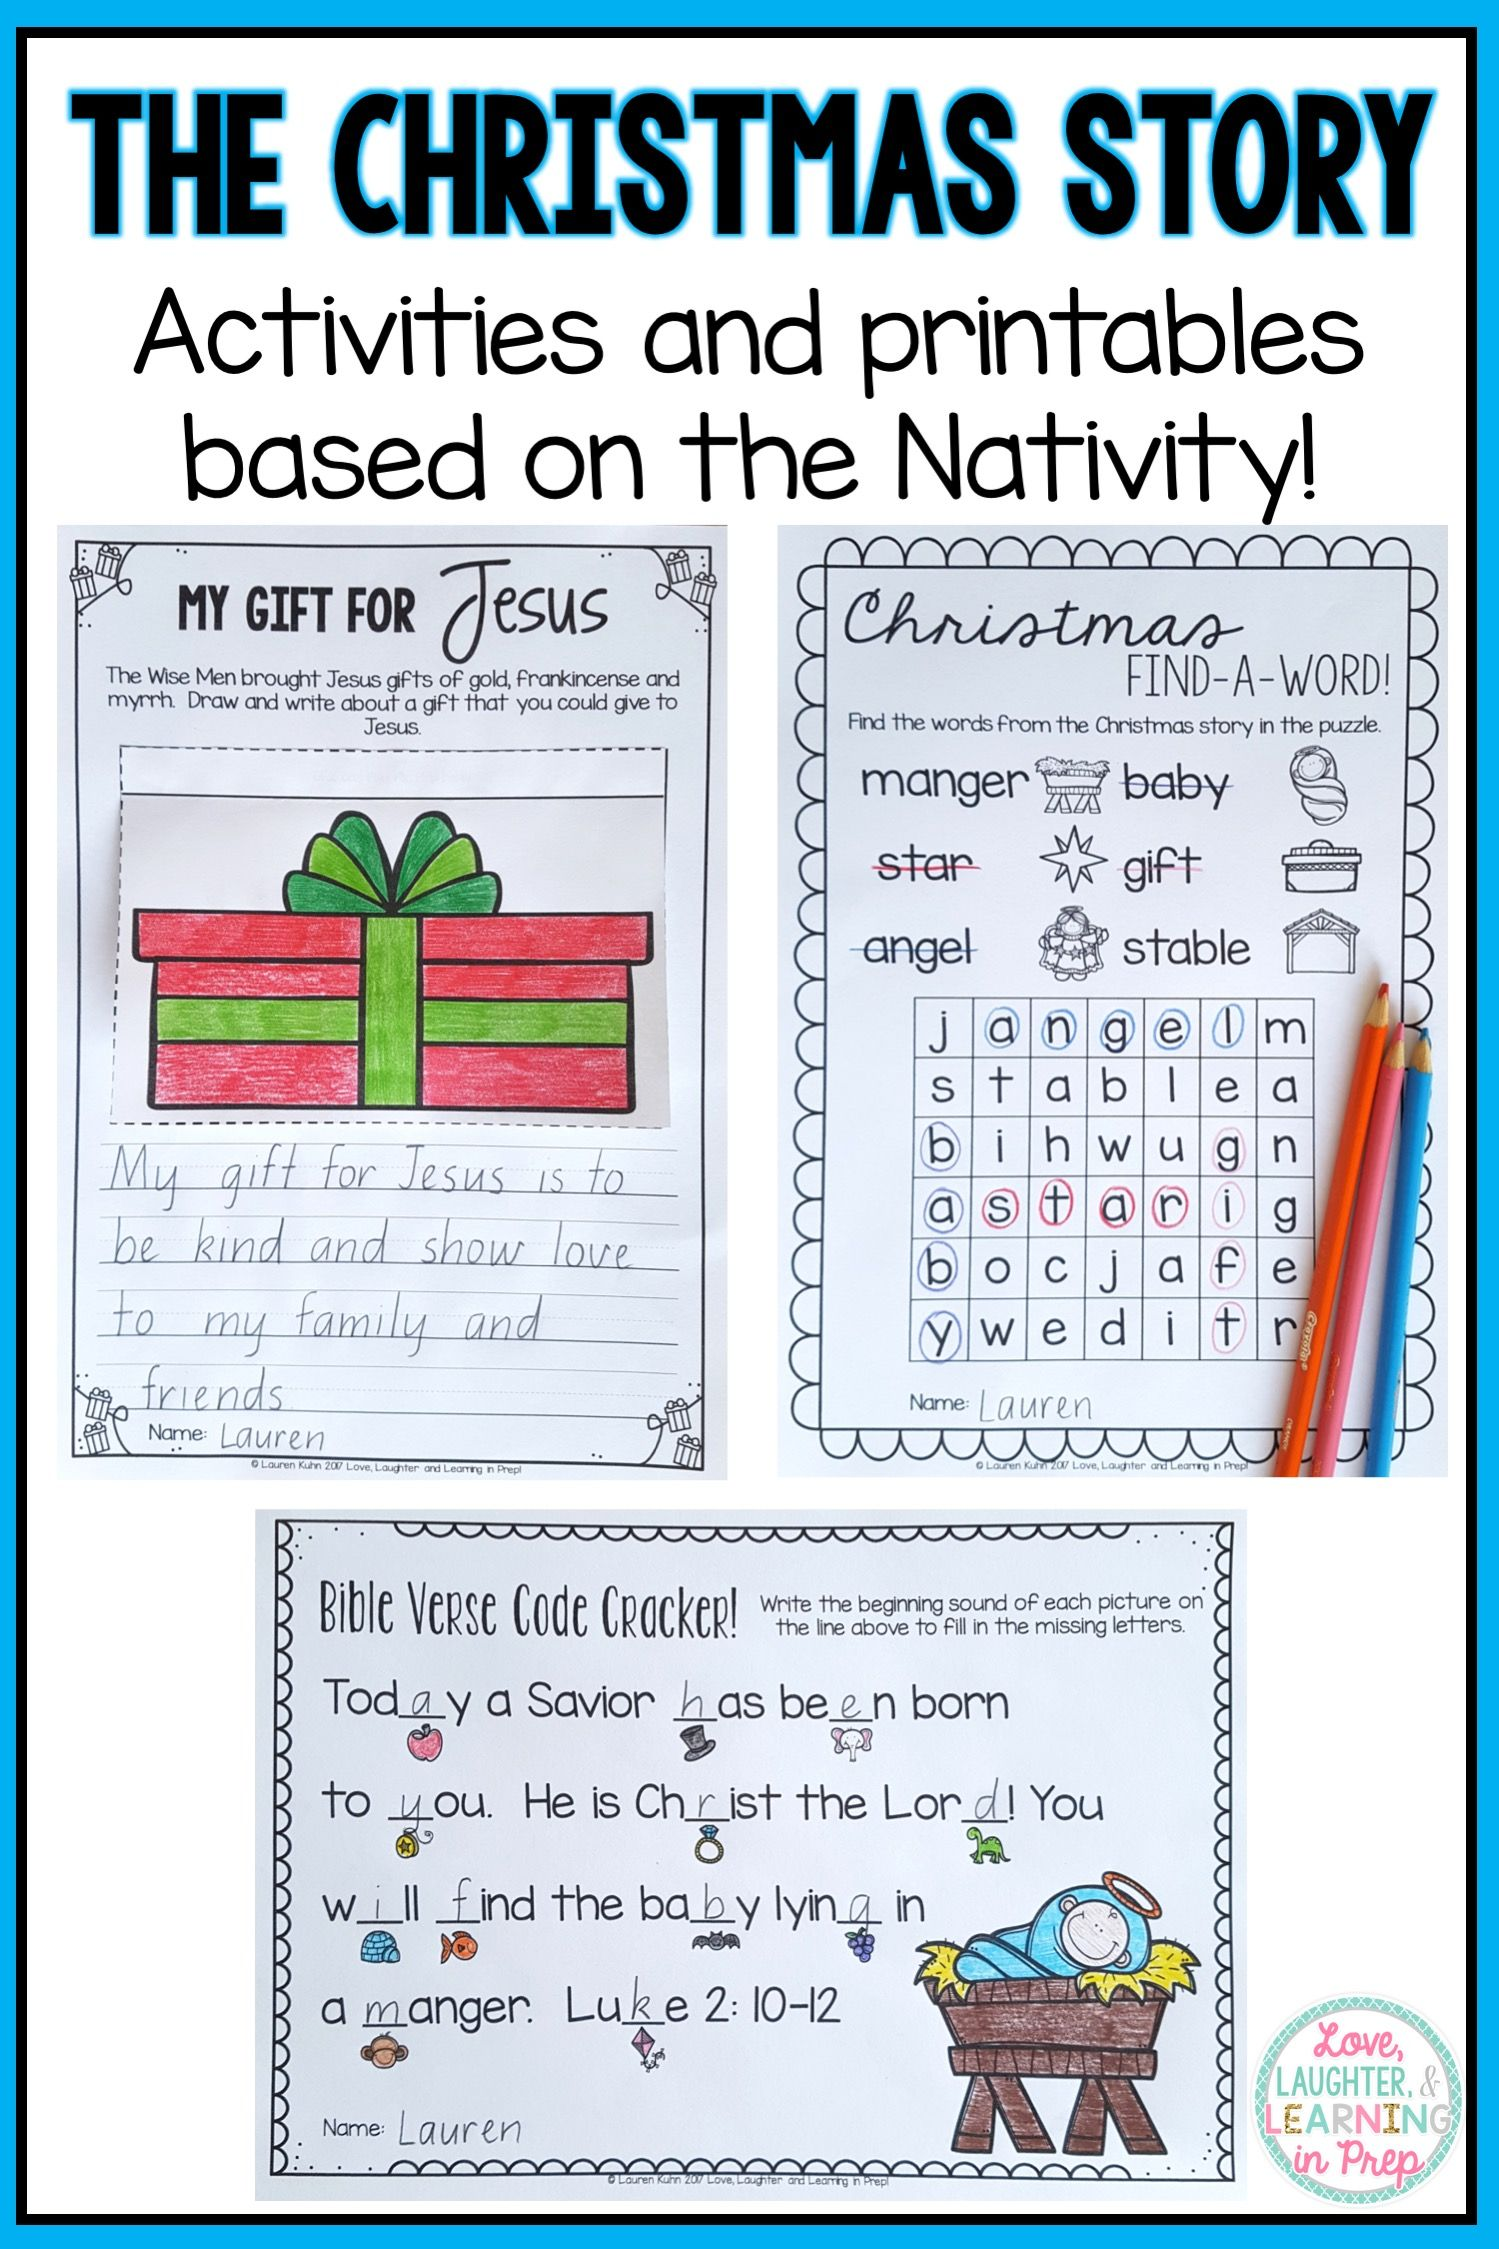 The Christmas Story Nativity Activities And Printables